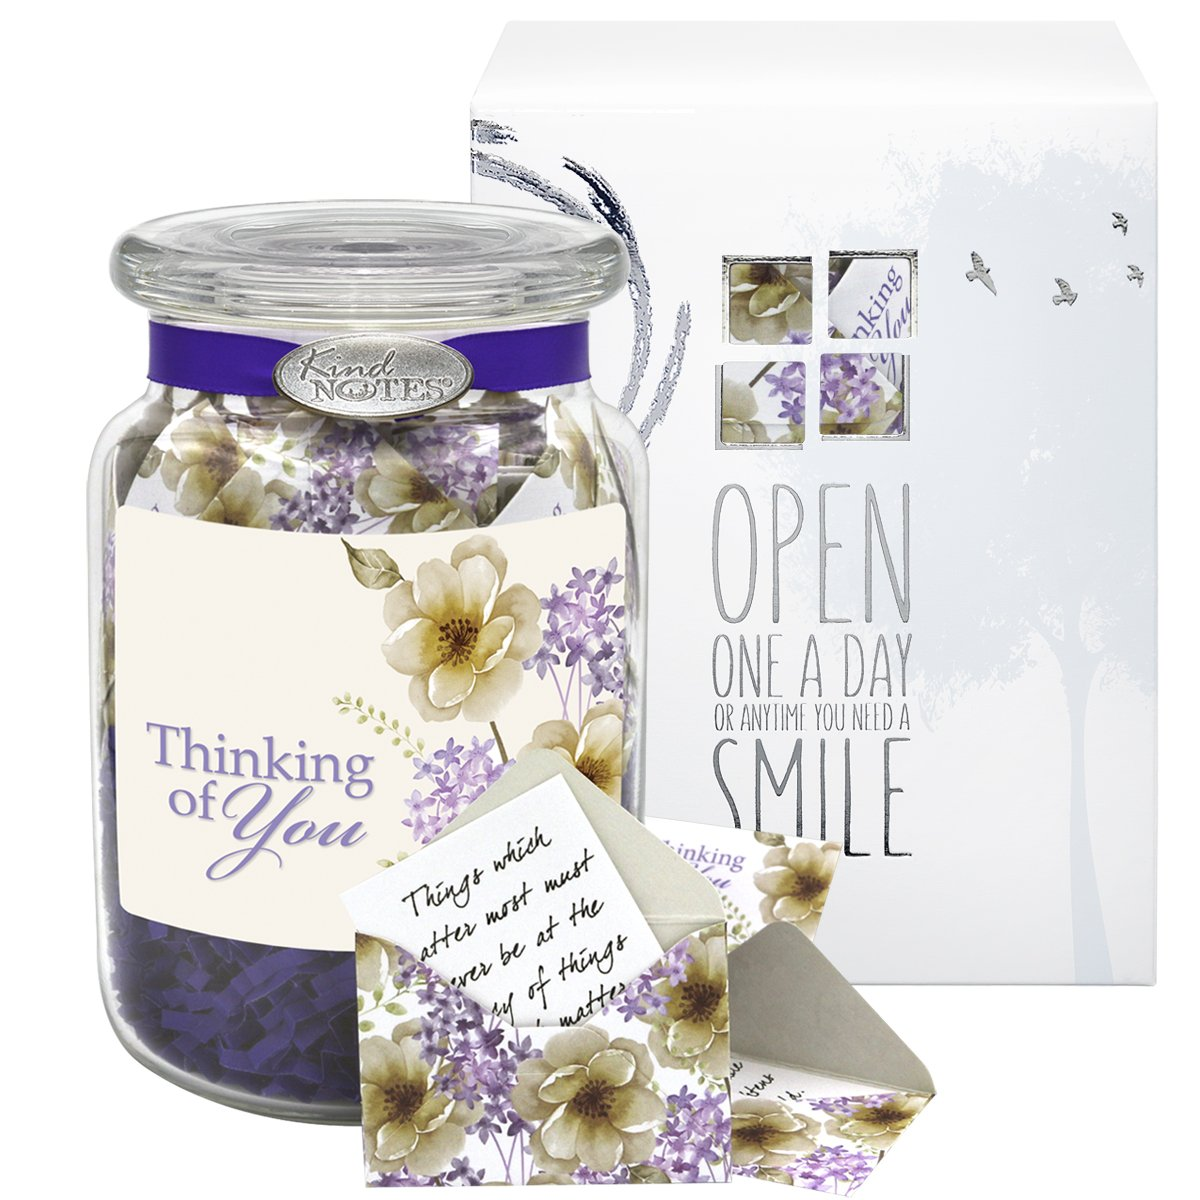 KindNotes Glass LONG DISTANCE RELATIONSHIP Keepsake Gift Jar of Messages for Him or Her Birthday, Anniversary, Just Because - Violet Thinking of You